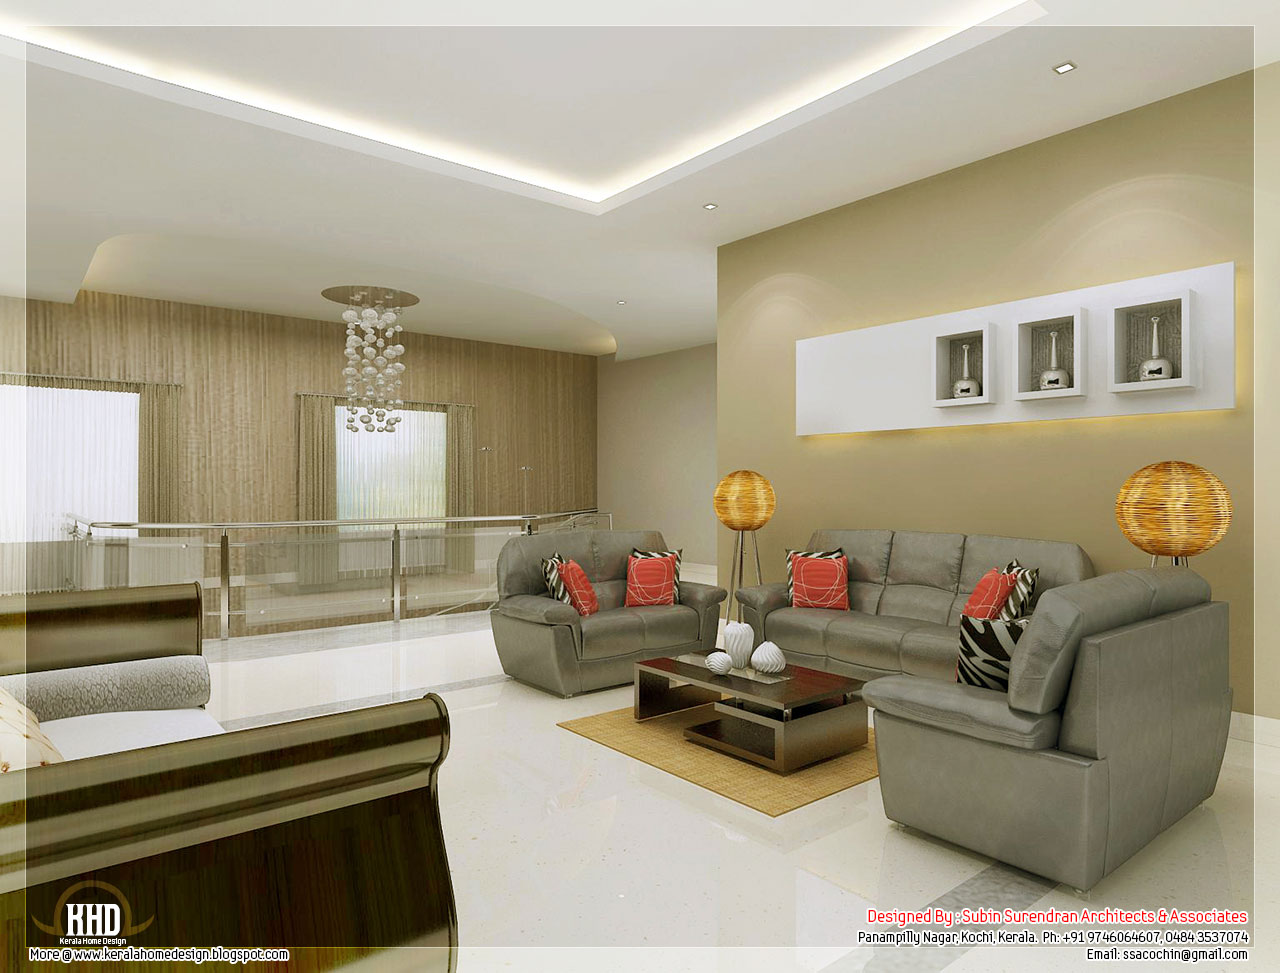 Awesome 3d interior renderings kerala home design and floor plans - Living interior design ...